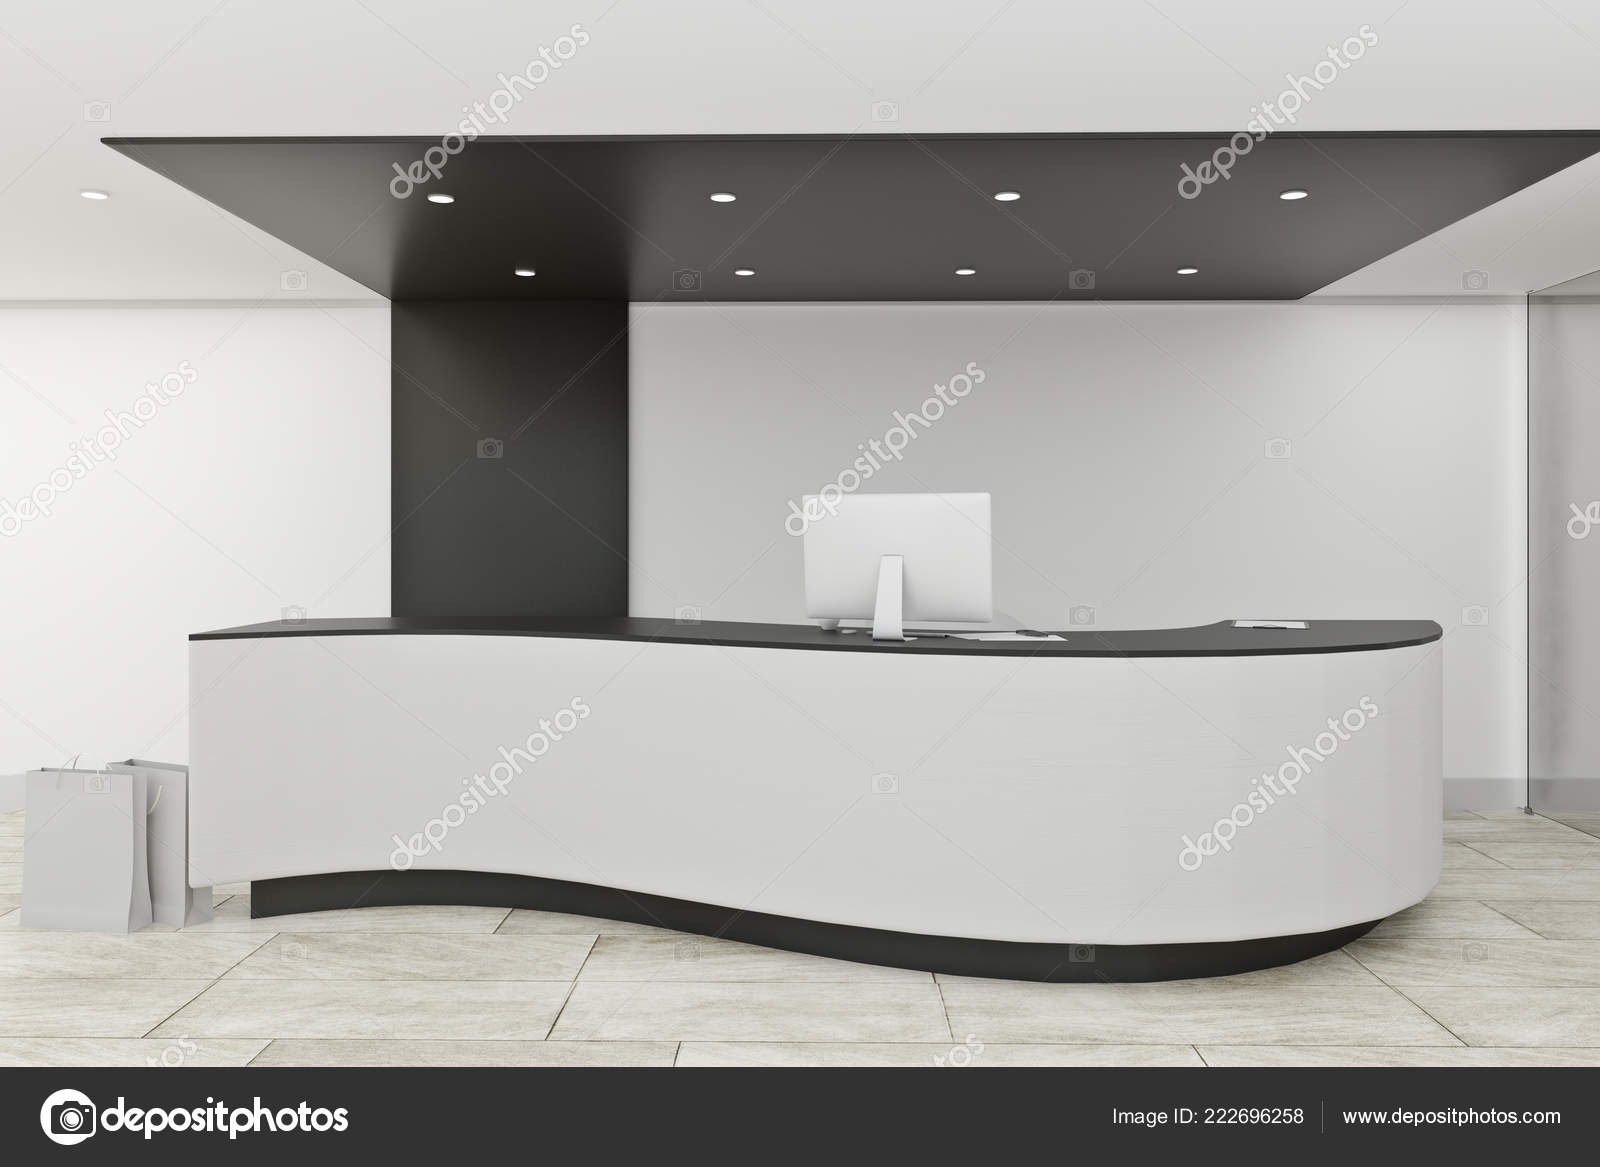 Stylish Office Lobby Interior Reception Desk Entrance Concept Rendering U2014  Stock Photo